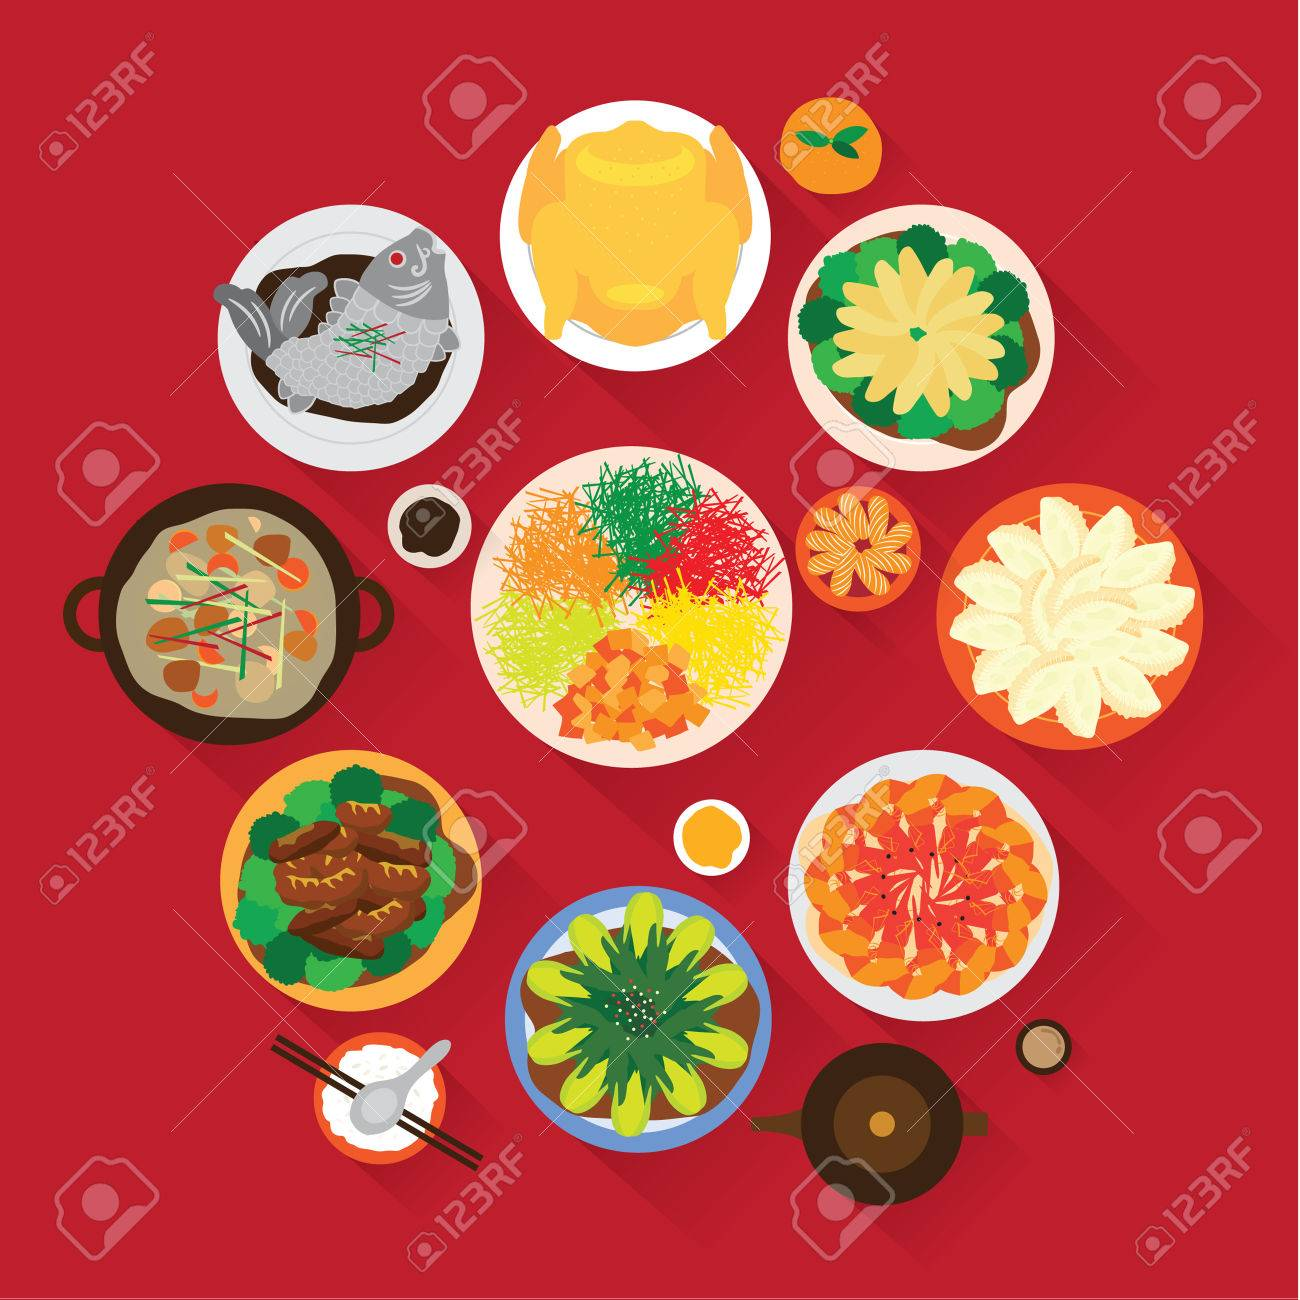 Chinese New Year Reunion Dinner Vector Design - 35001056